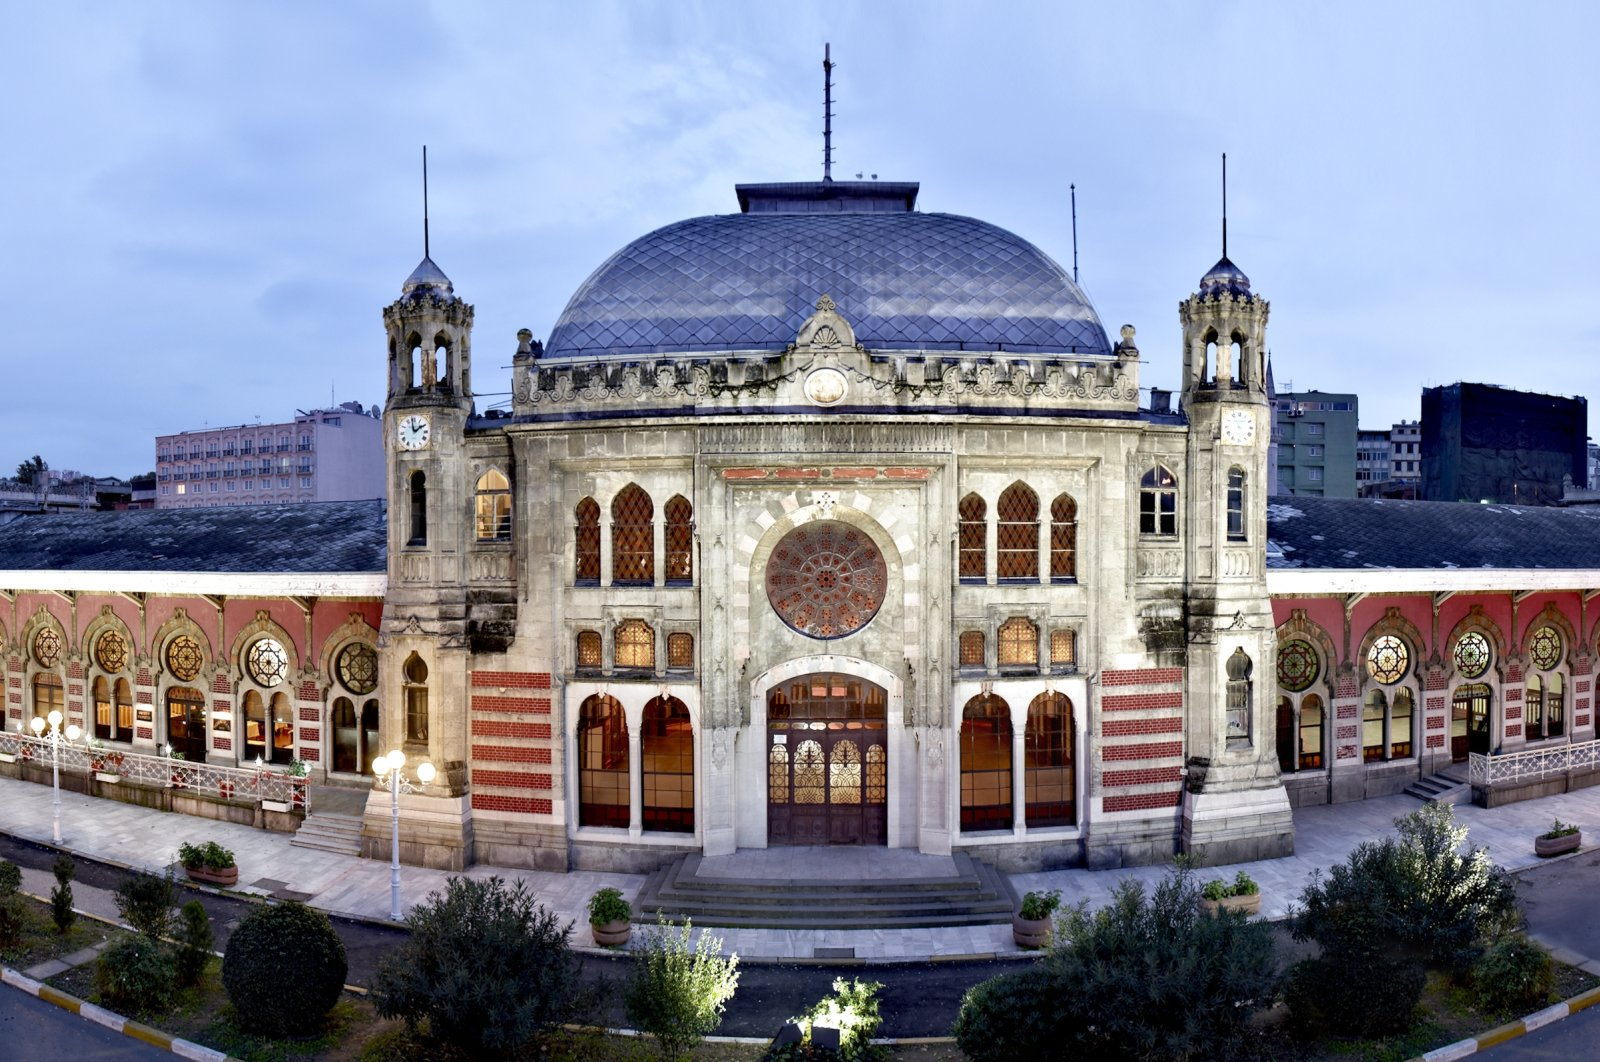 The PhotoMaraton will begin at the Sirkeci Train Station (pictured) in Istanbul on Nov. 14, 2020. (iStock Photo)